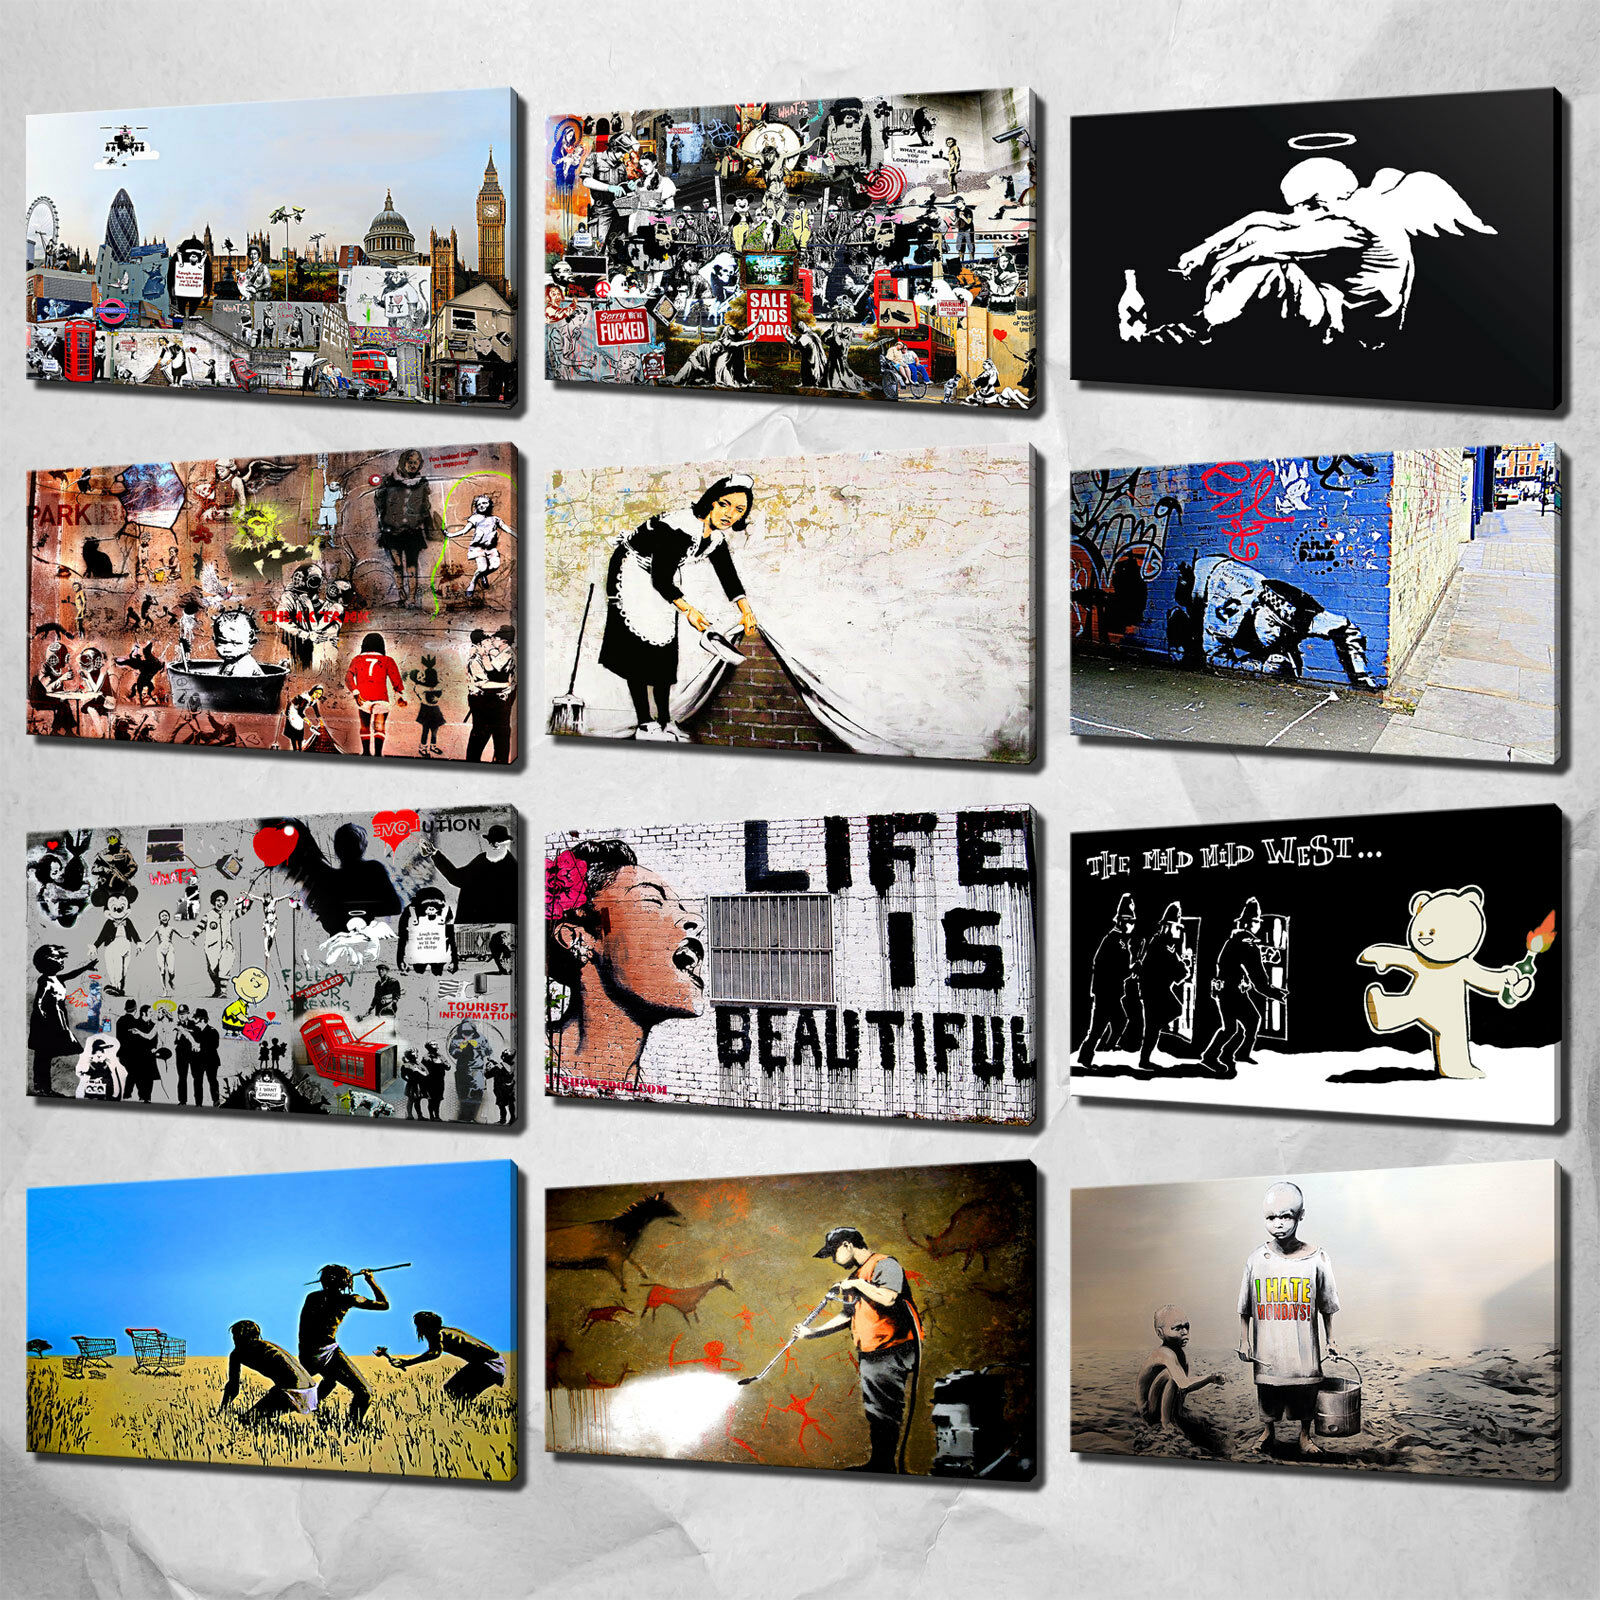 BANKSY RAT COLOURFUL COLLECTION GRAFFITI CANVAS PRINT PICTURE POSTER WALL ART